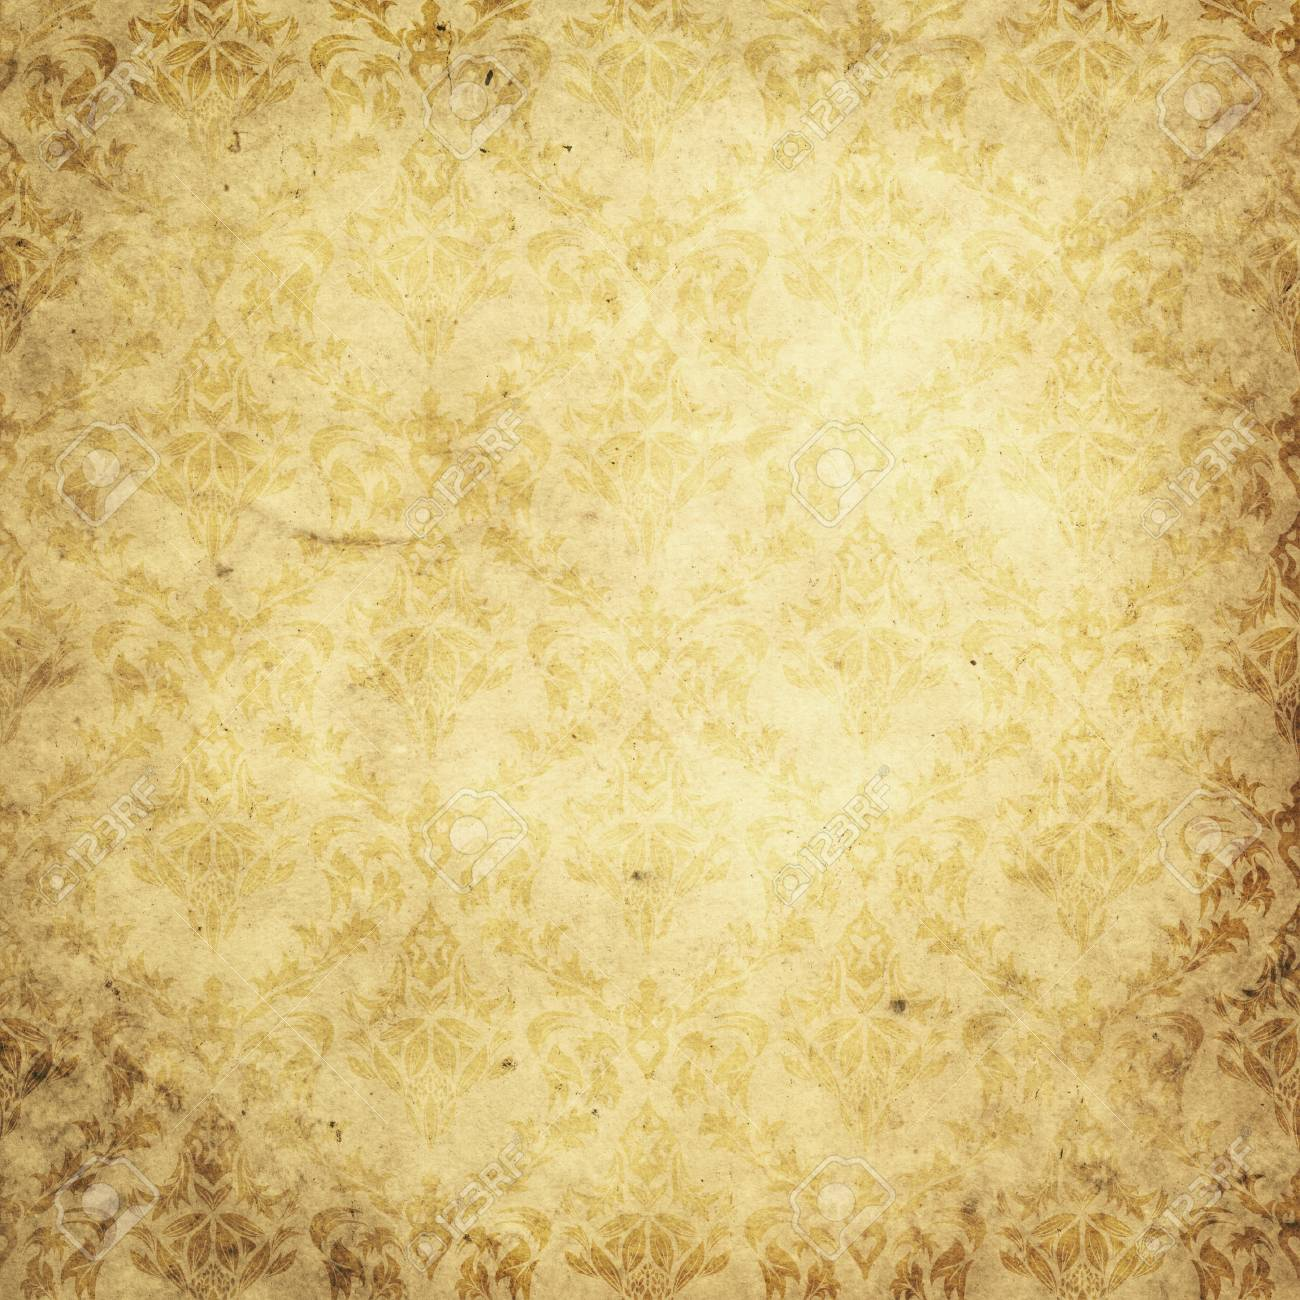 aged and yellowed paper background. vintage paper texture for